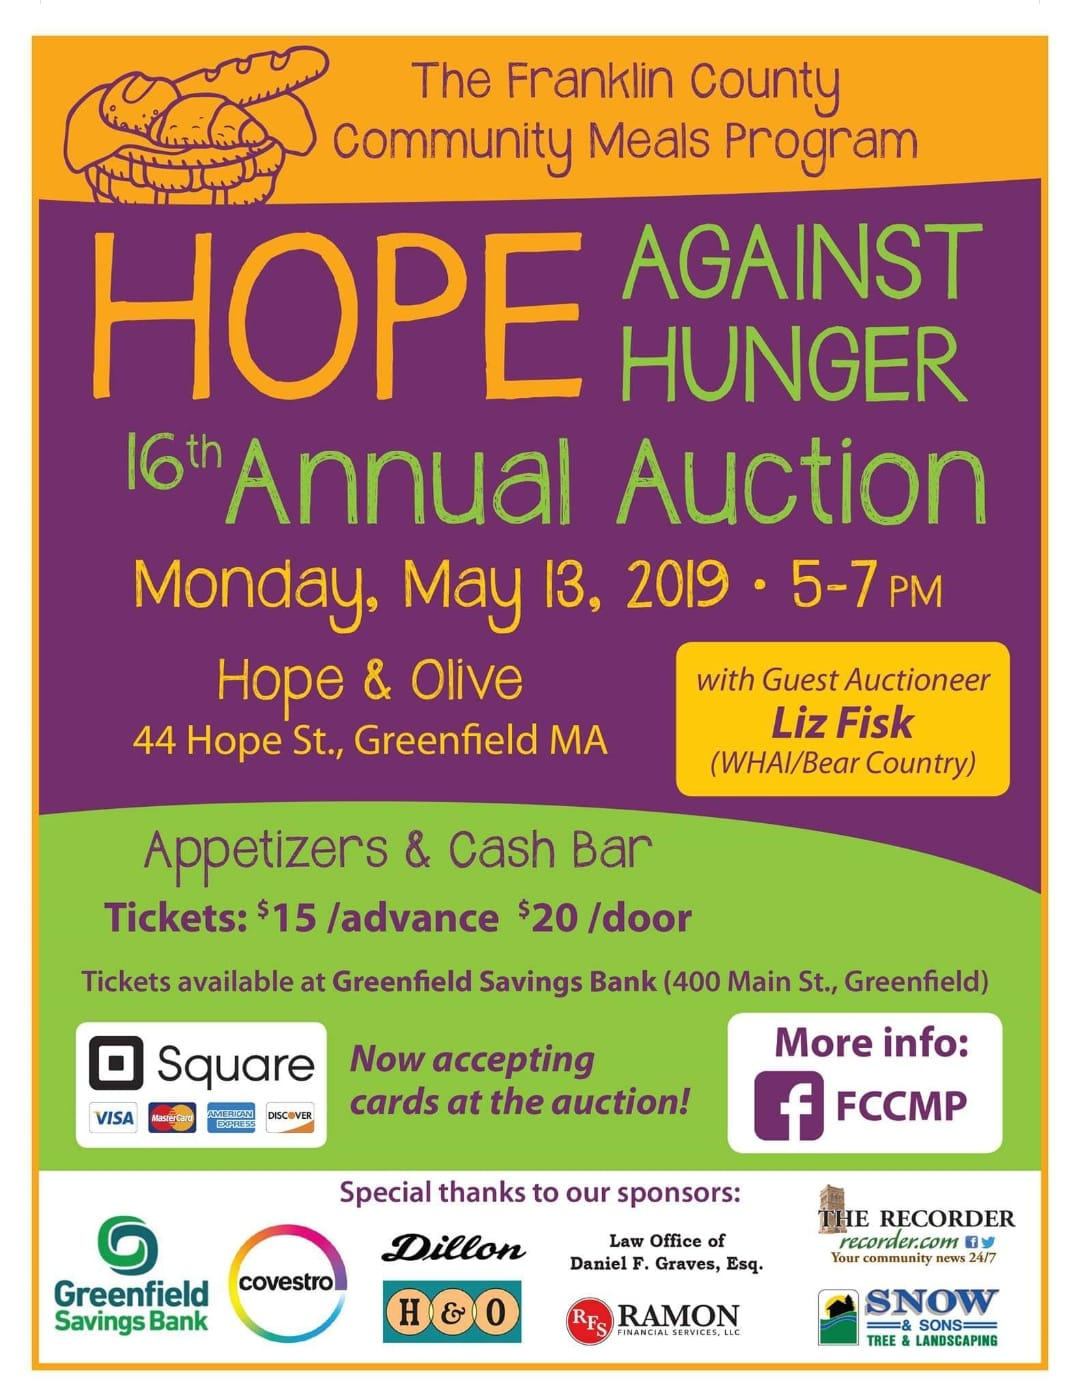 Hope against hunger annual auction